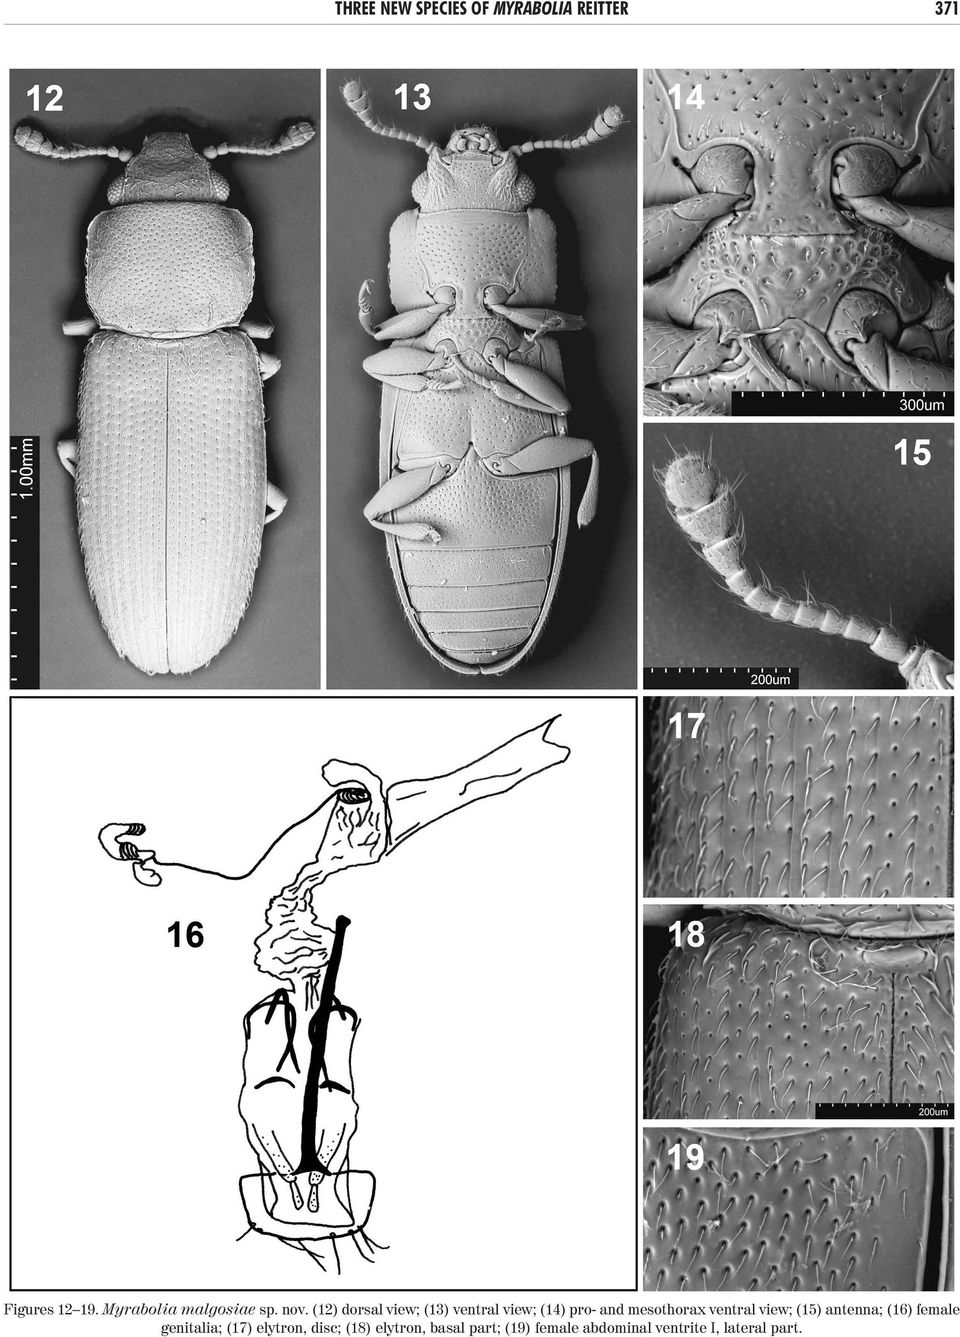 (12) dorsal view; (13) ventral view; (14) pro- and mesothorax ventral